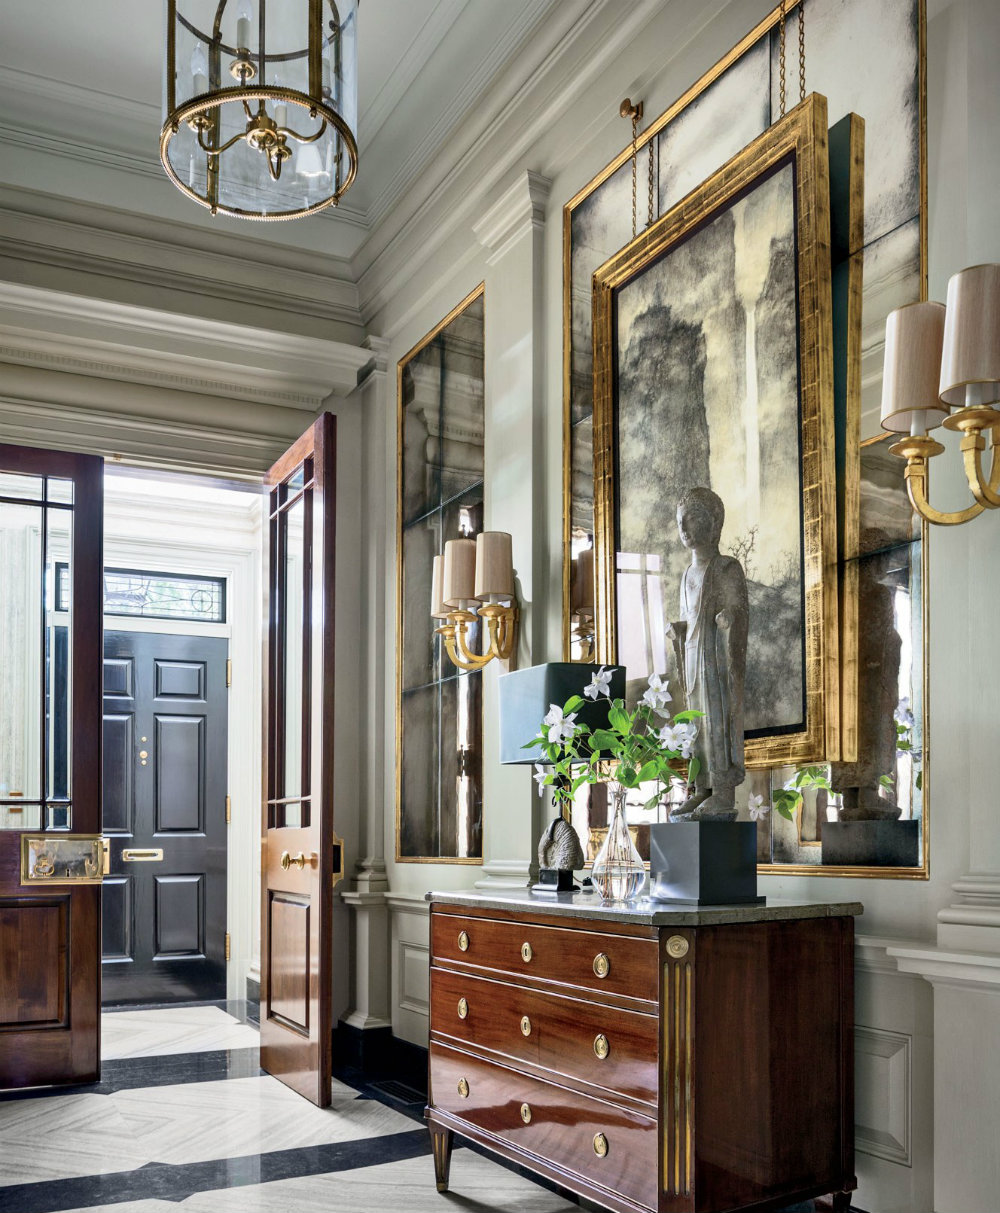 7 Elegant Entryways for the Home of Your Dreams 02 Elegant Entryways 7 Elegant Entryways for the Home of Your Dreams 7 Elegant Entryways for the Home of Your Dreams 02